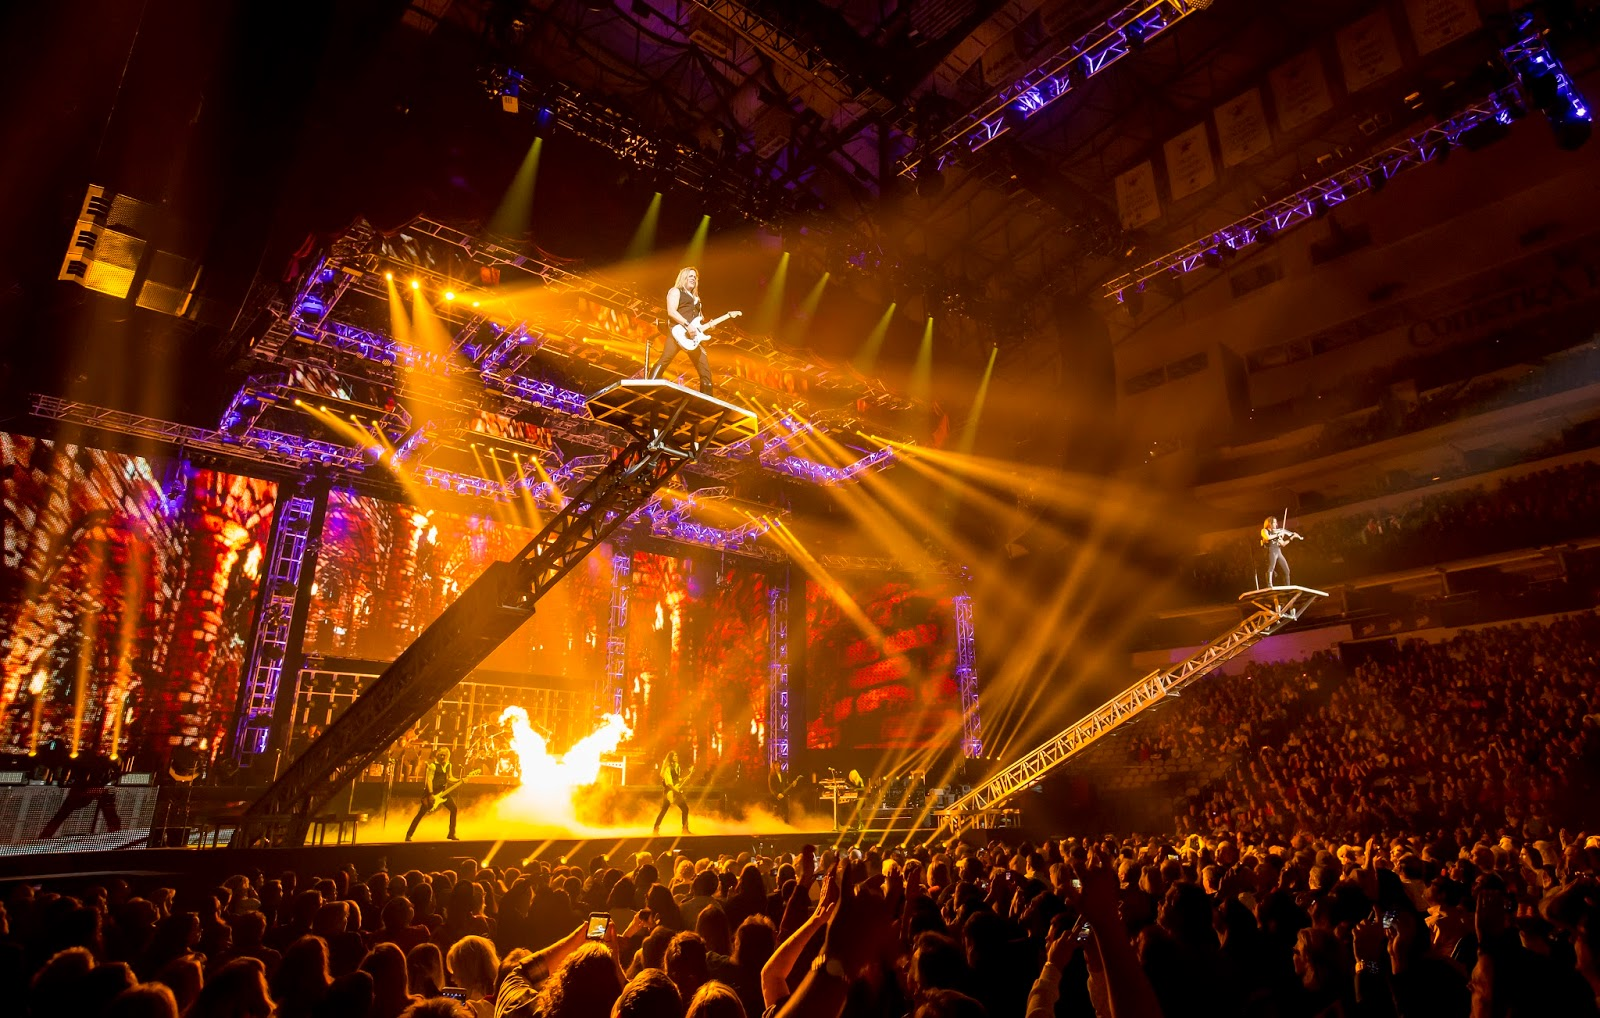 Upcoming: Trans-Siberian Orchestra, Dec. 30 at the Palace (Detroit area)